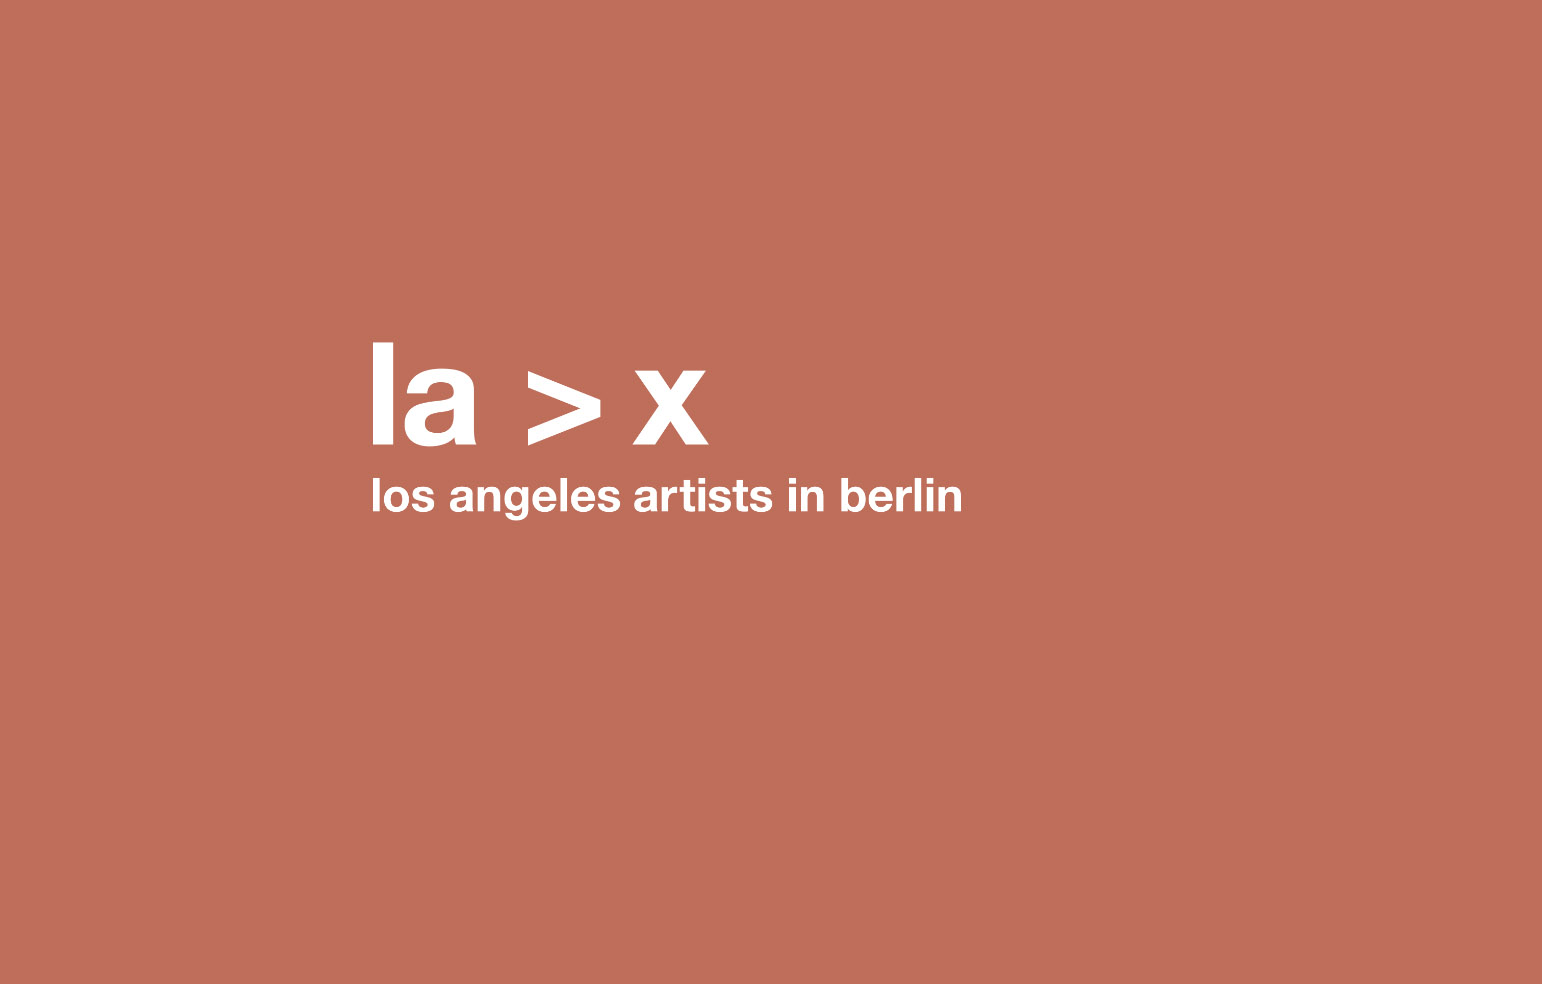 la>x haubrok | los angeles atists in berlin